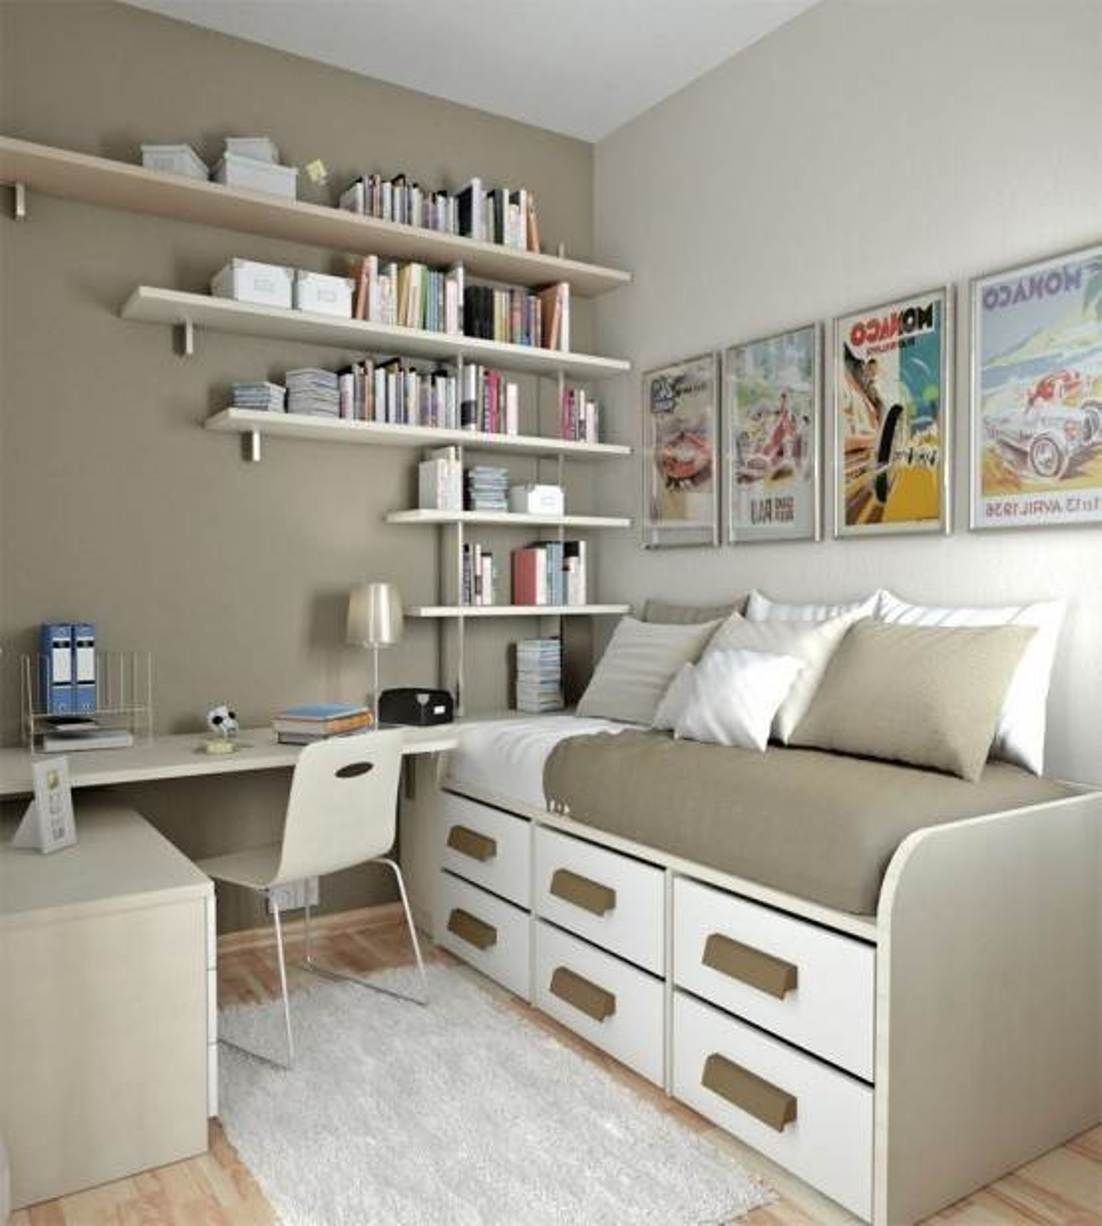 30 Clever Space Saving Design Ideas For Small Homes Small